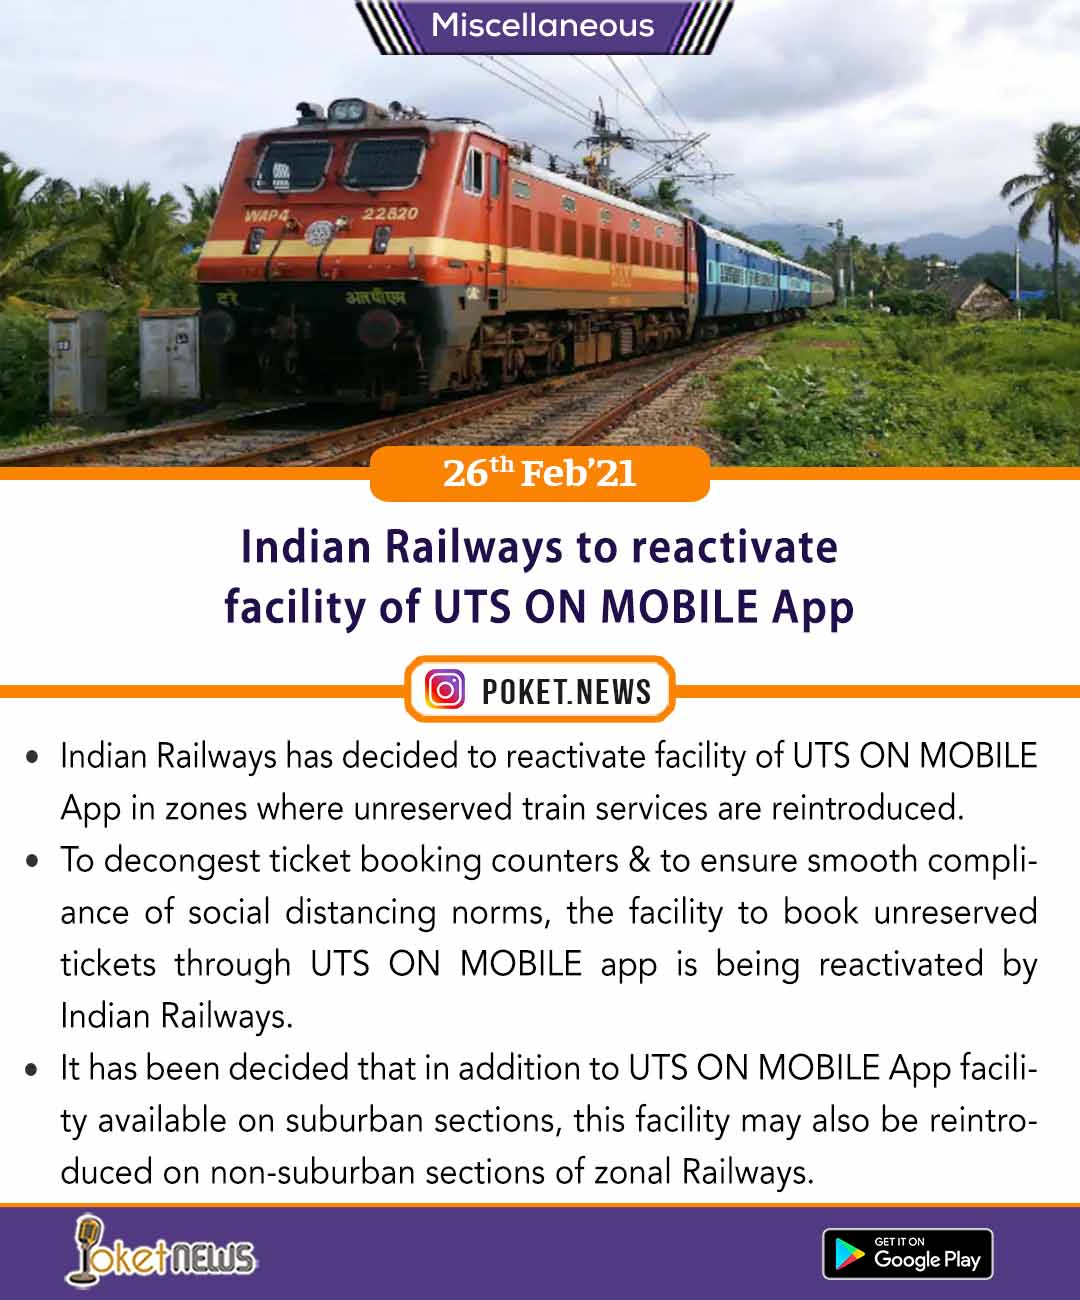 Indian Railways to reactivate facility of UTS ON MOBILE App